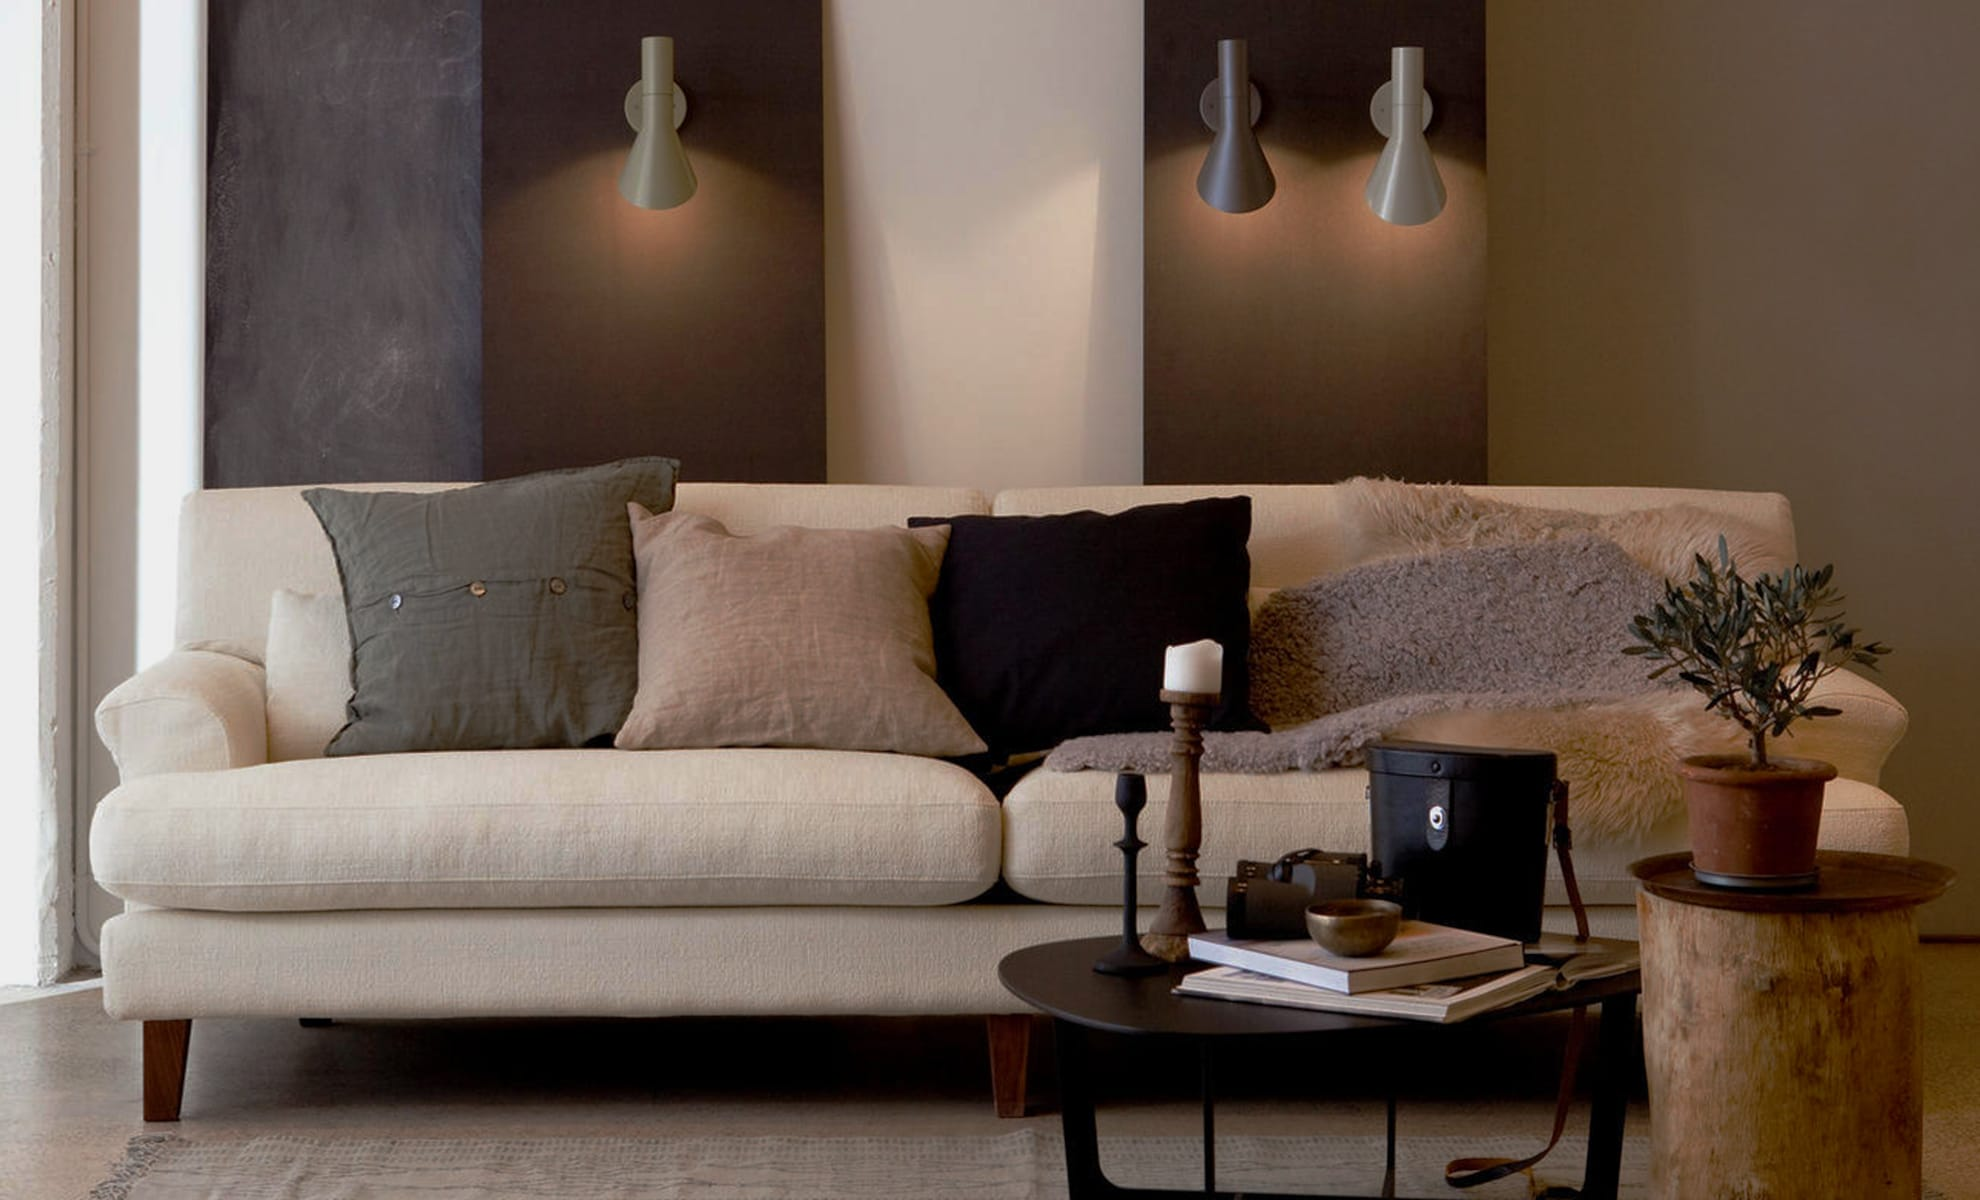 timeless lighting. 4 Key Pieces To Design A Timeless Home Lighting